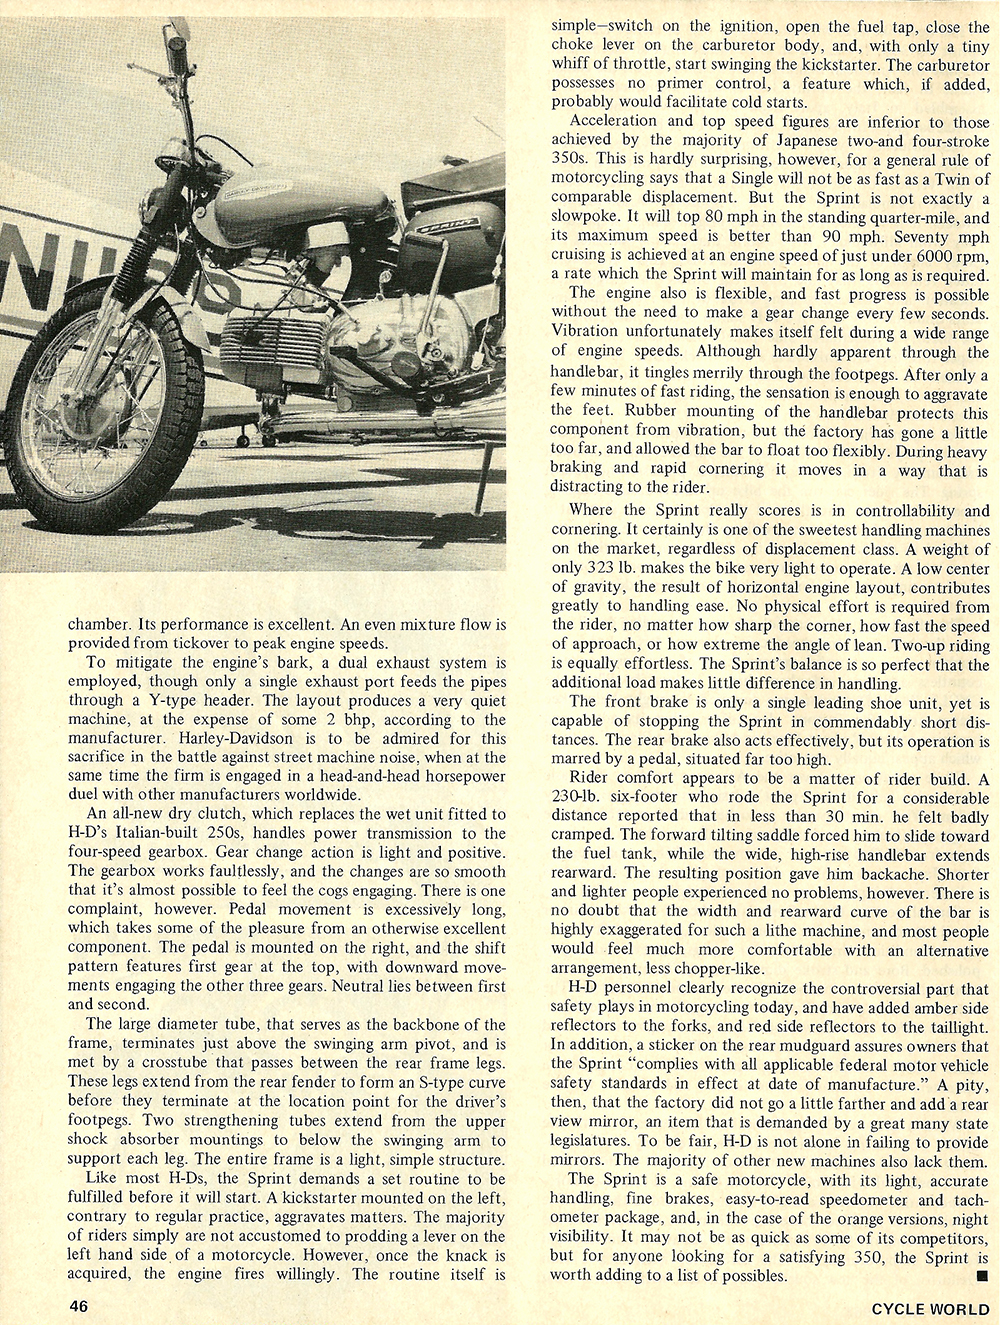 1968 Harley Sprint ss 350 road test 03.jpg